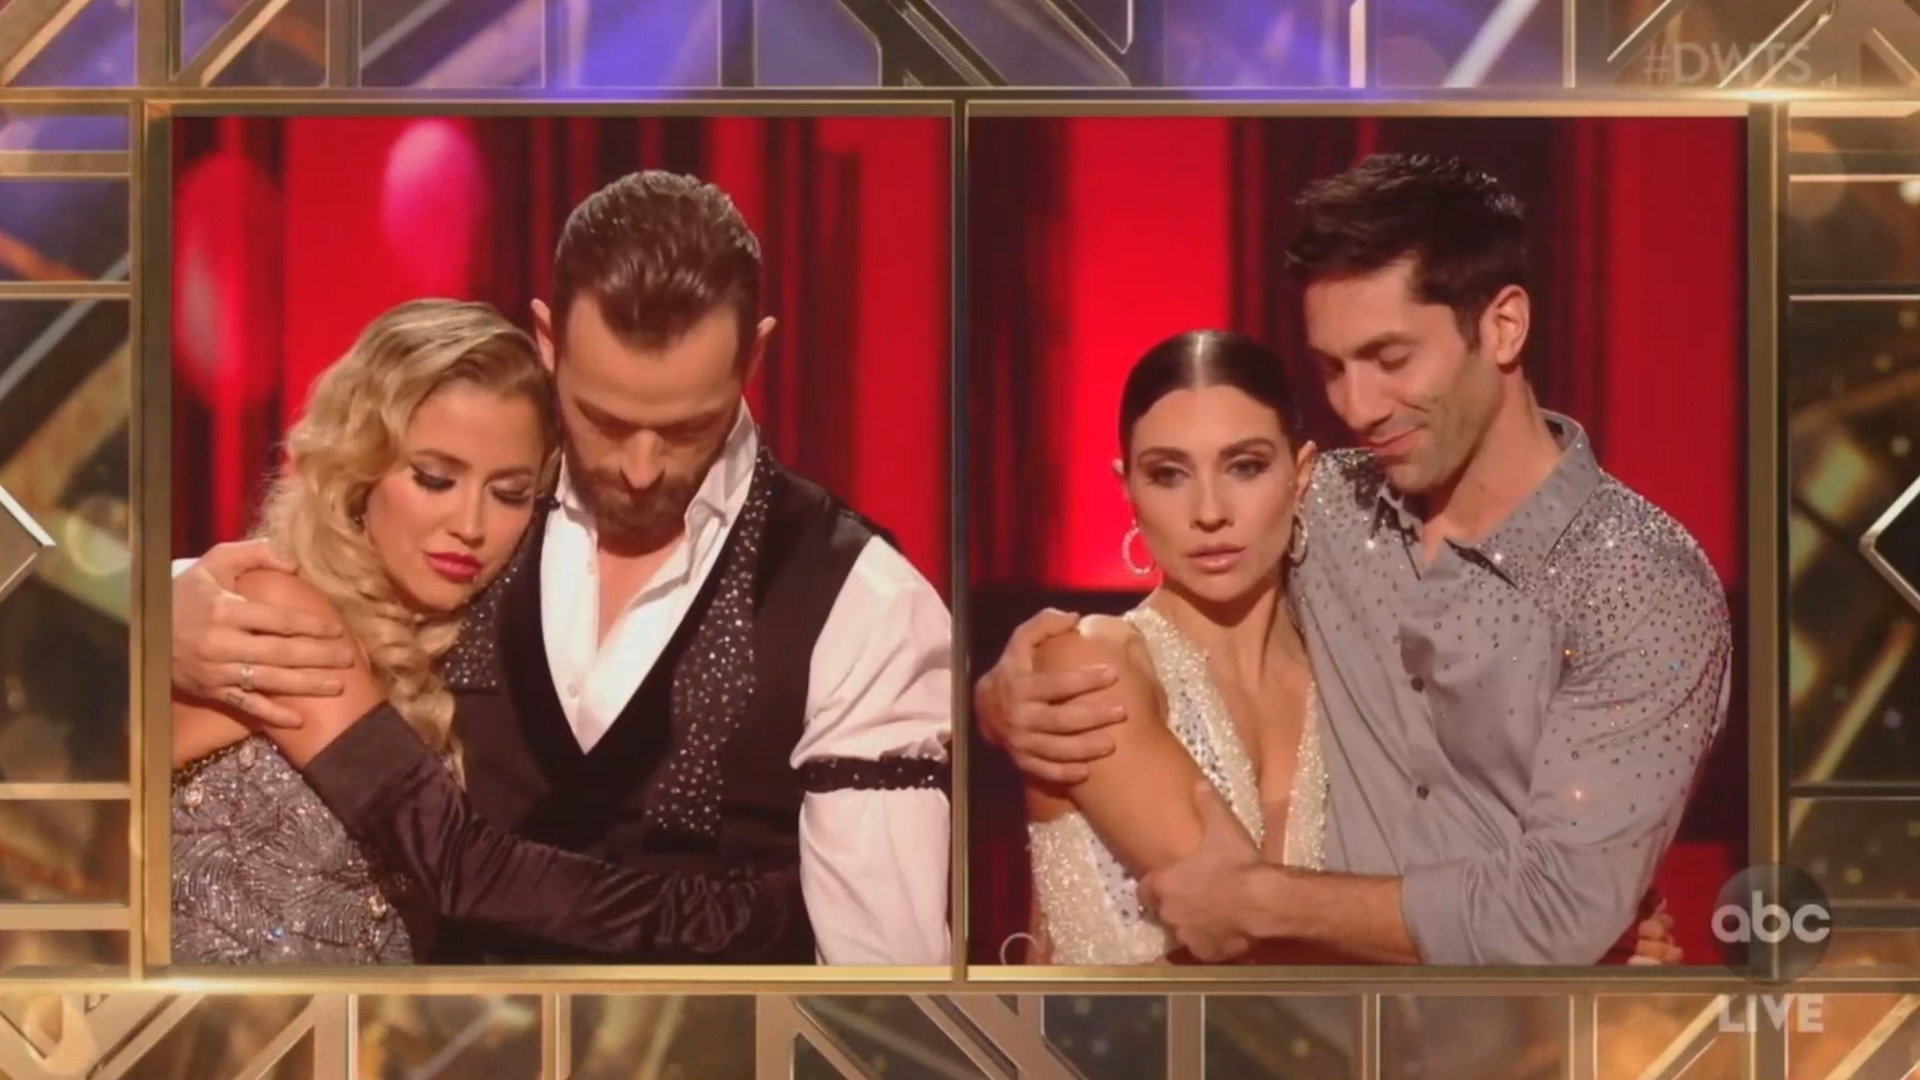 'DWTS' finale: Controversial winner, COVID restrictions and Tyra's last-minute wardrobe